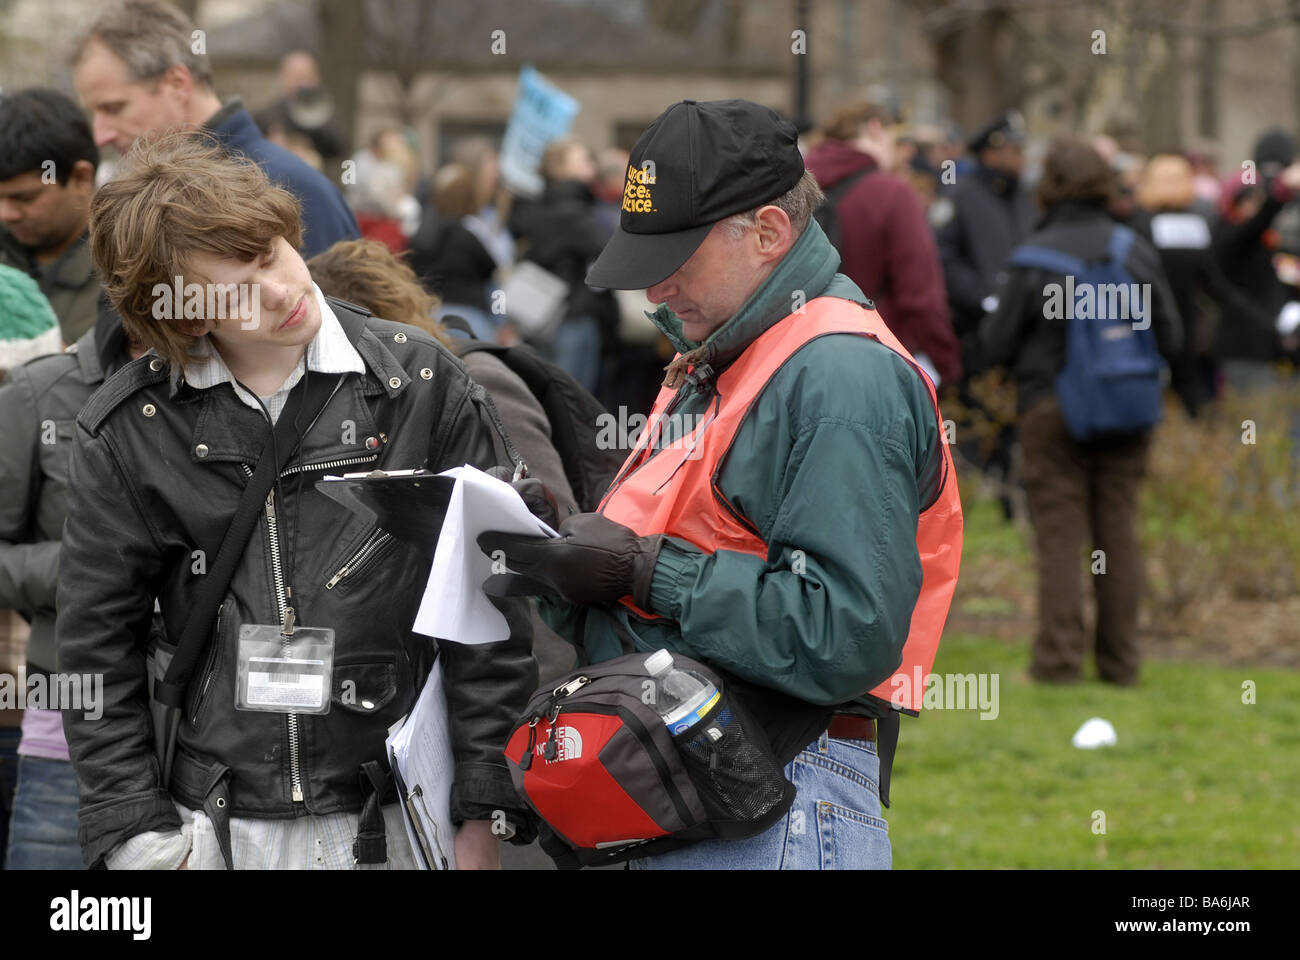 A teenage volunteer left collects signatures on a petition in Battery Park in New York - Stock Image